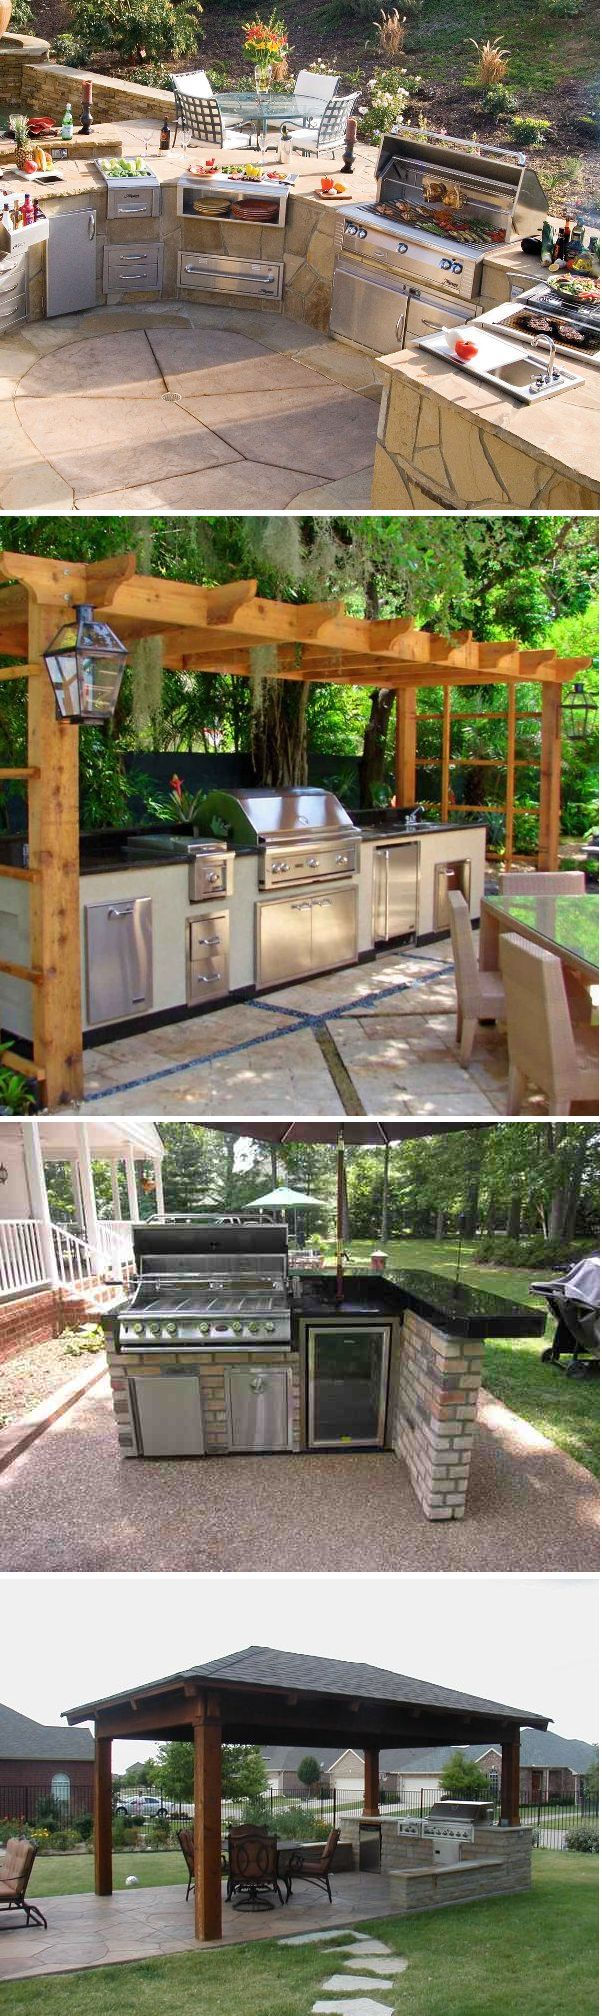 best 10 outdoor kitchen design ideas on pinterest outdoor kitchens backyard kitchen and bar pool table